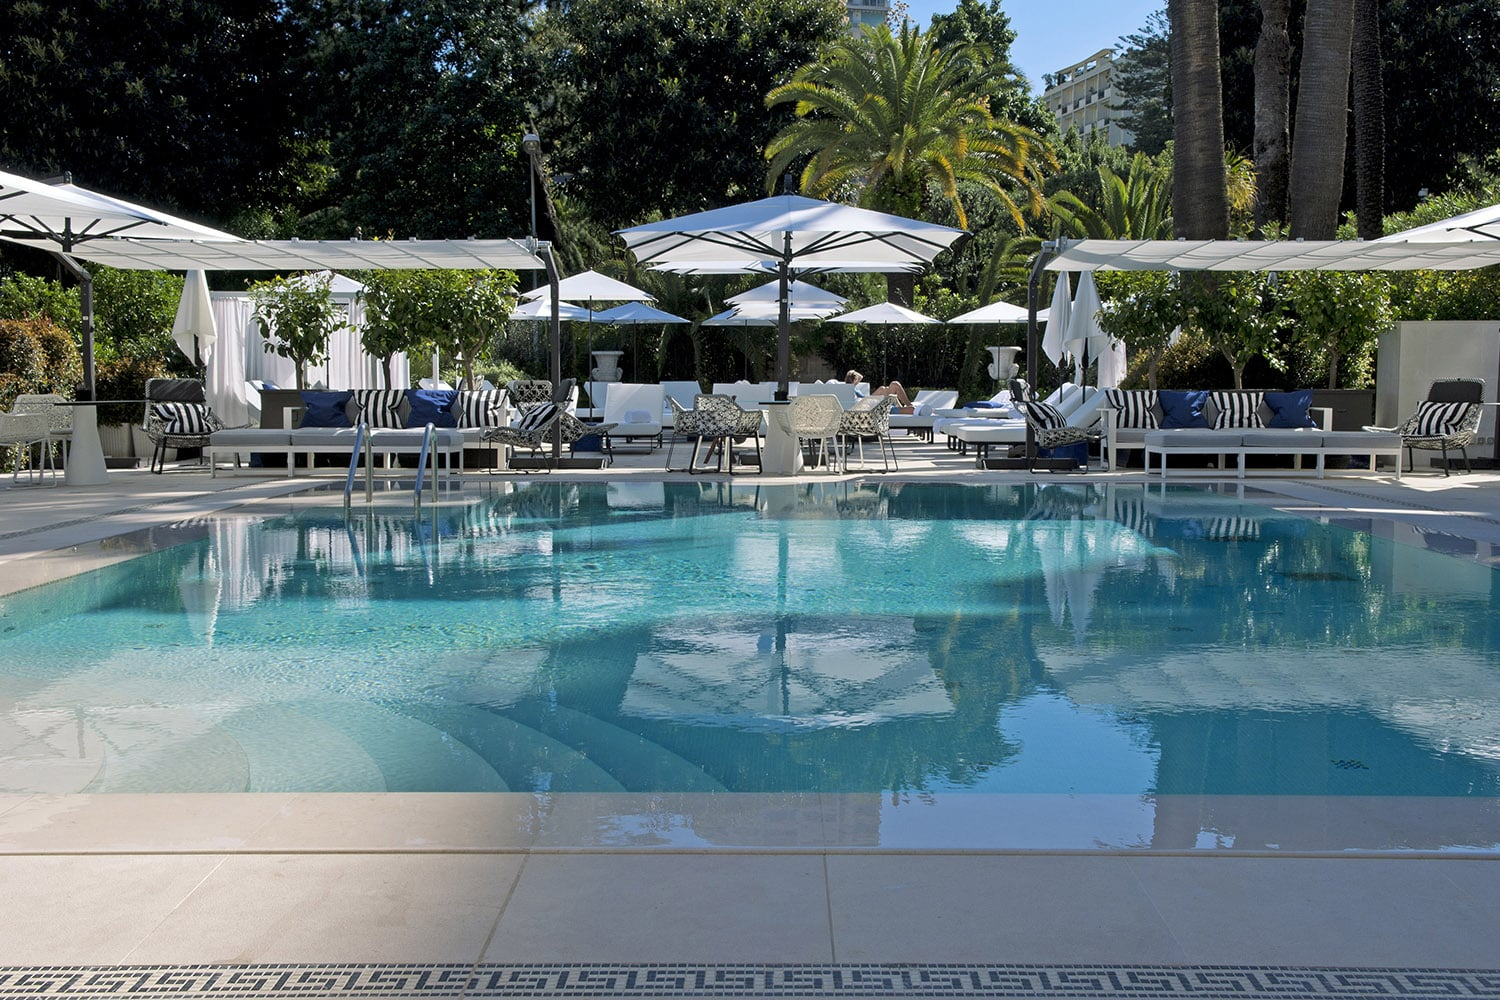 Swimming pool and Odyssey restaurant at the Hotel Métropole Monte-Carlo, Monaco